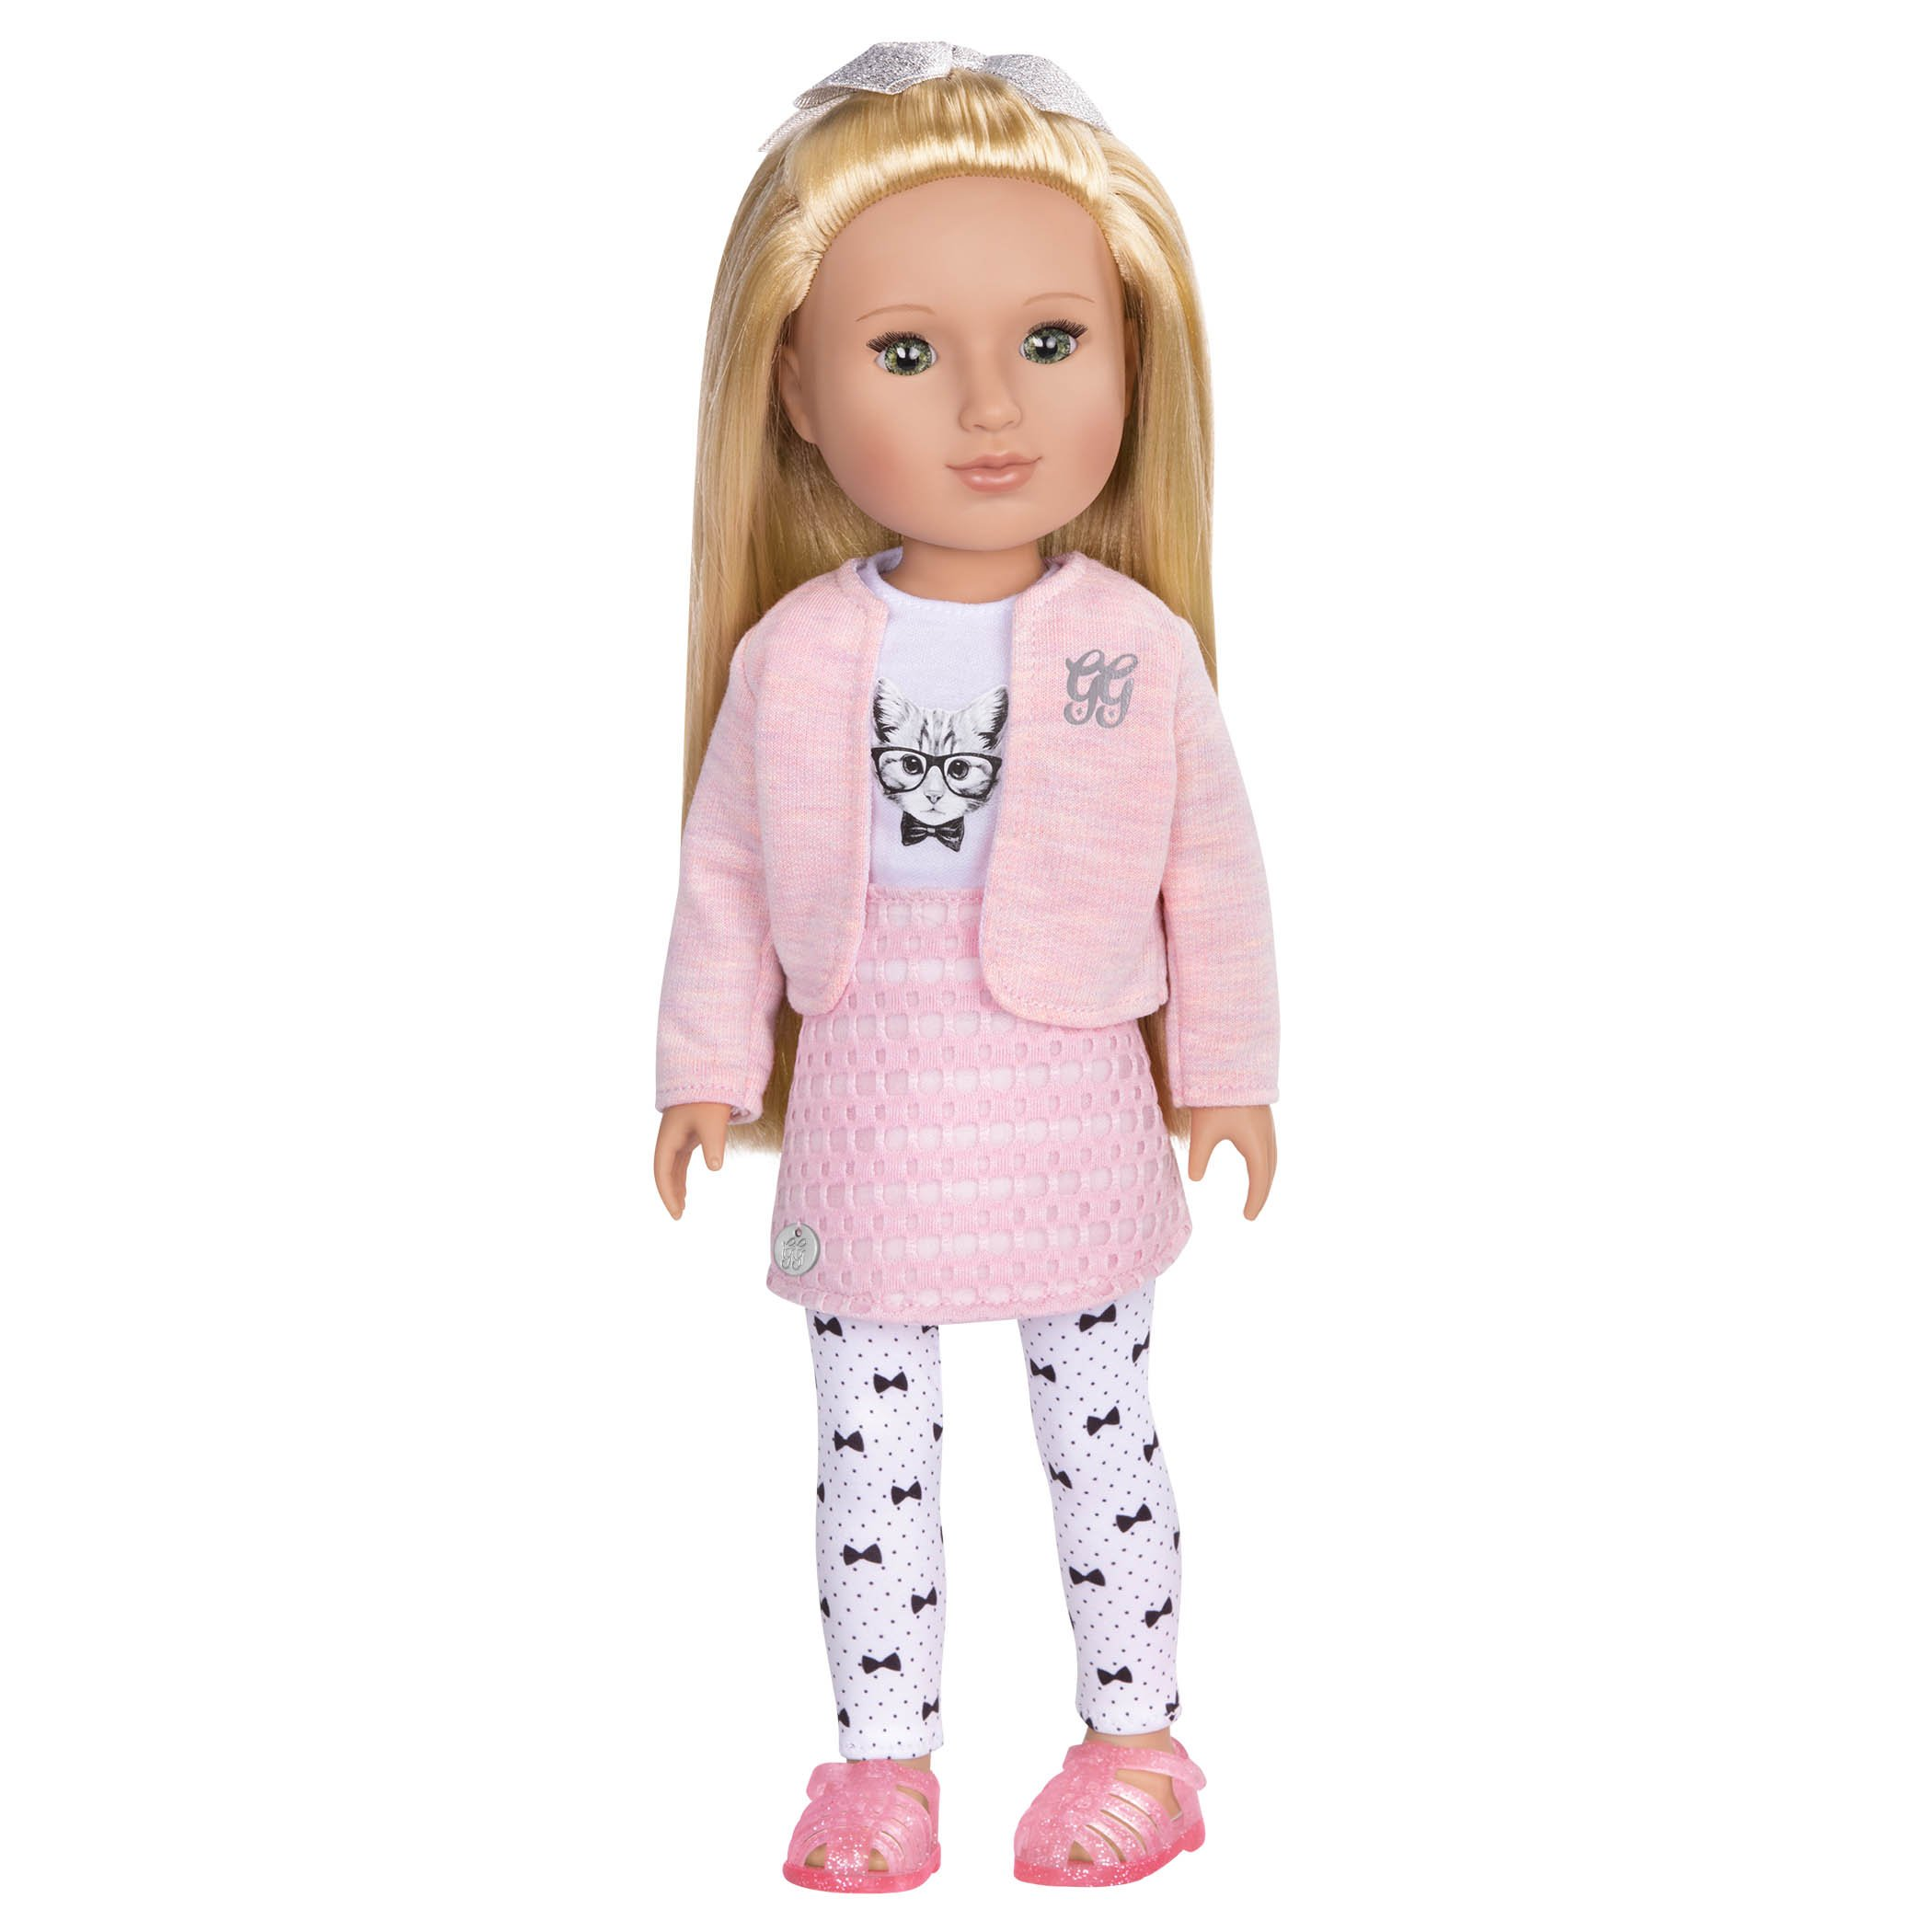 Glitter Girls by Battat – Fifer 14 inch Fashion Doll – Dolls for Girls Age 3 and Up – Doll, Clothing and Accessories – Children's Toys